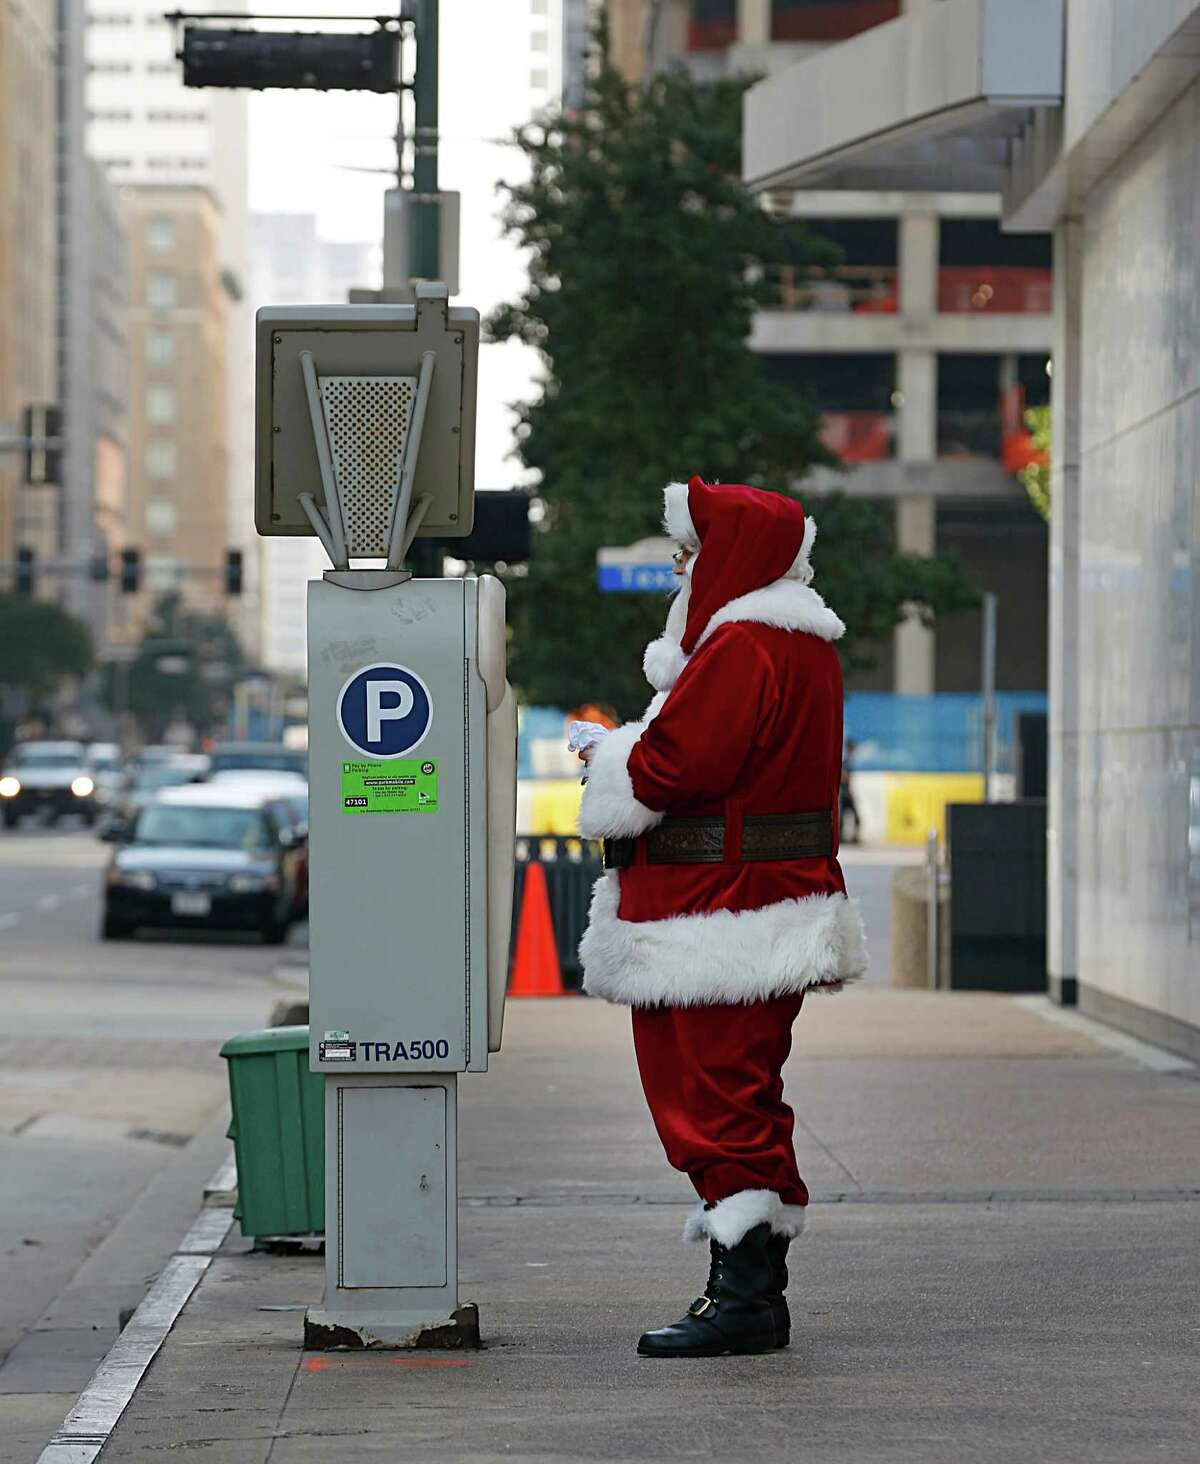 Santa Claus also known as Michael Weinberger uses a parking meter Thursday, Dec. 24, 2015, in Houston.